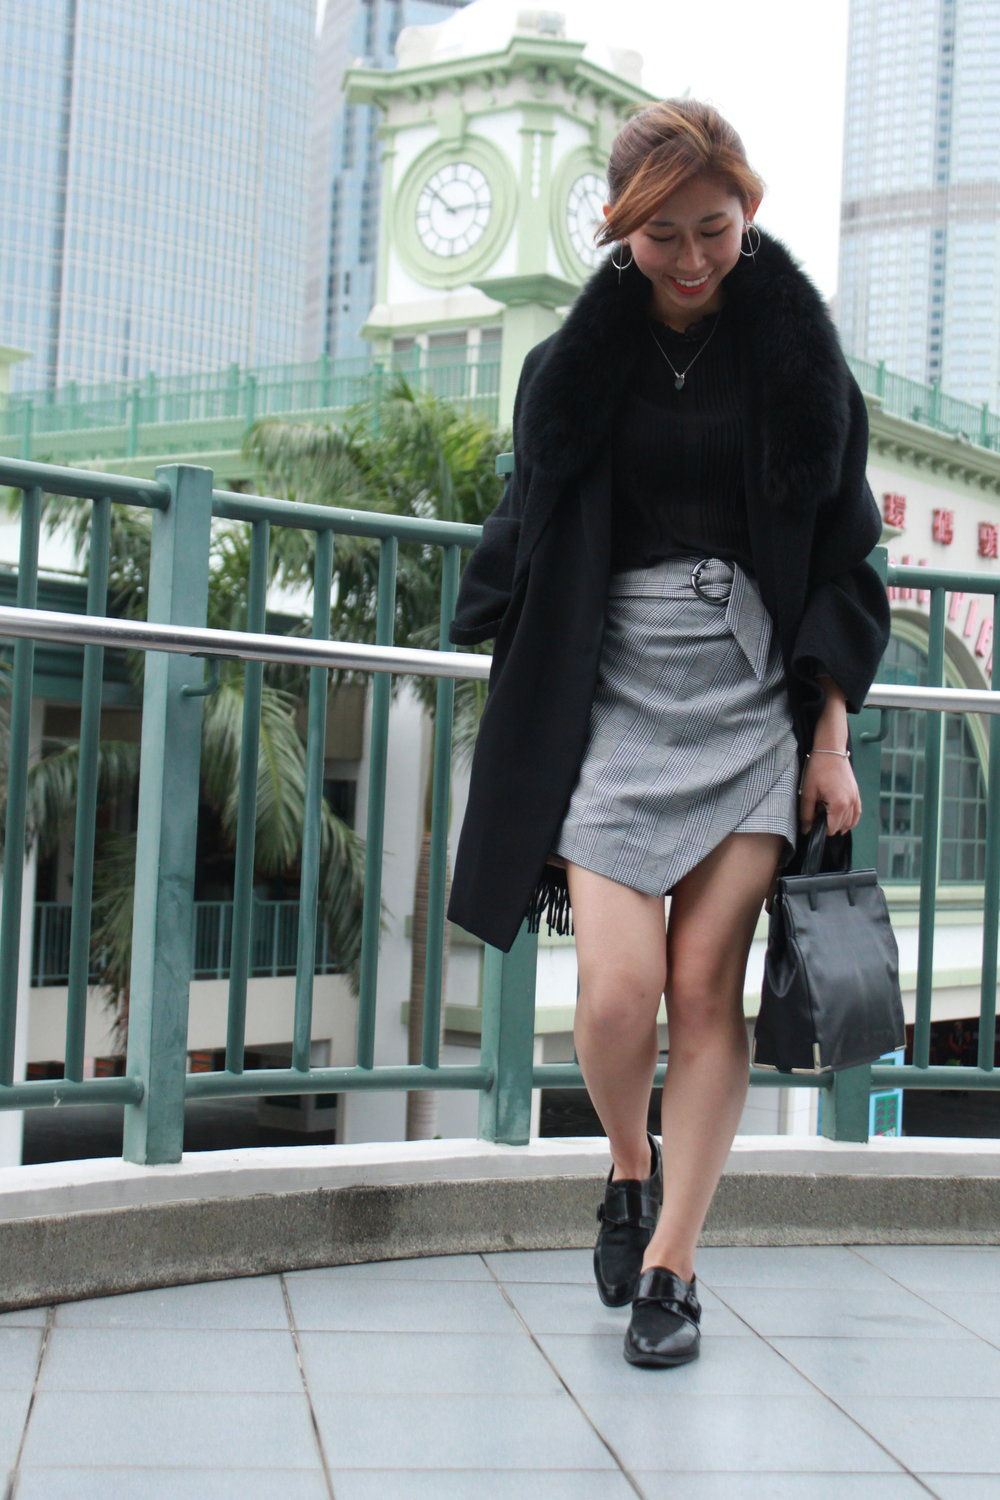 Long blazer from Korea / b+ab black blouse /  Topshop wrap belted check skirt  /  Giordano Ladies  fur scarf / Vanishing elephant /  Alexander Wang  handbag / Earrings from Taiwan